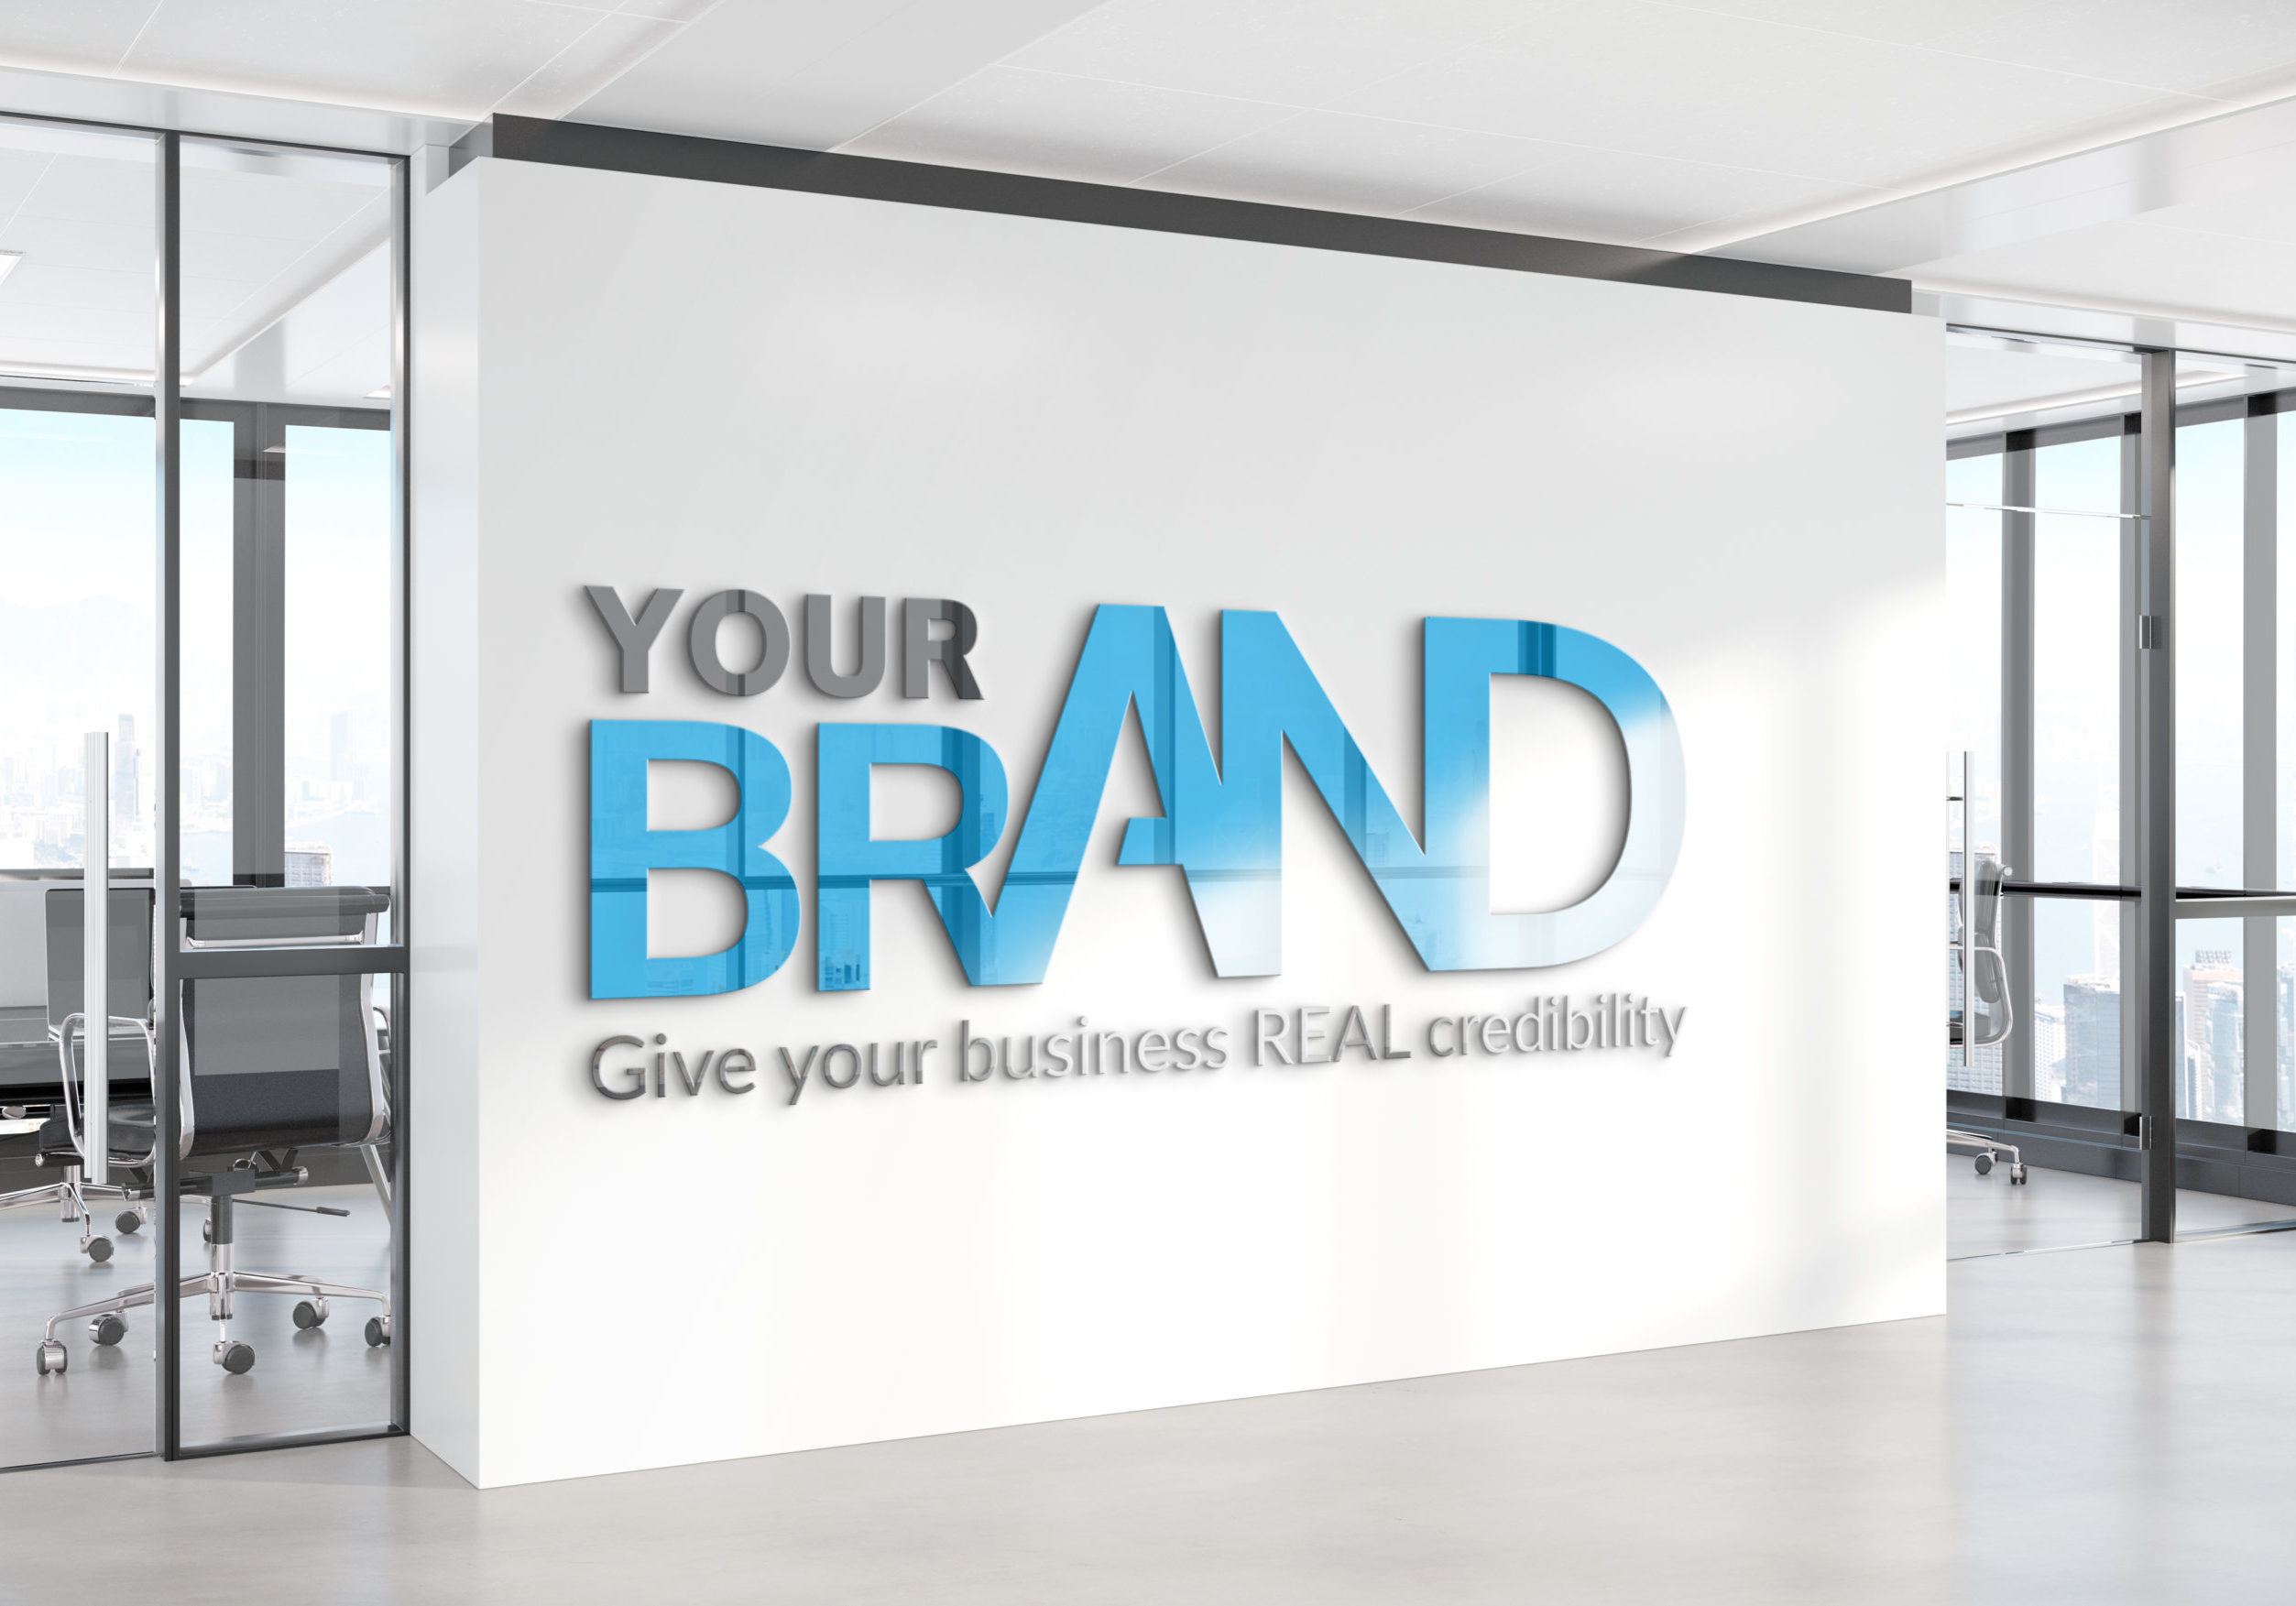 "Image of a smart office with lettering on the wall that says ""Your brand: Give your business REAL credibility"""